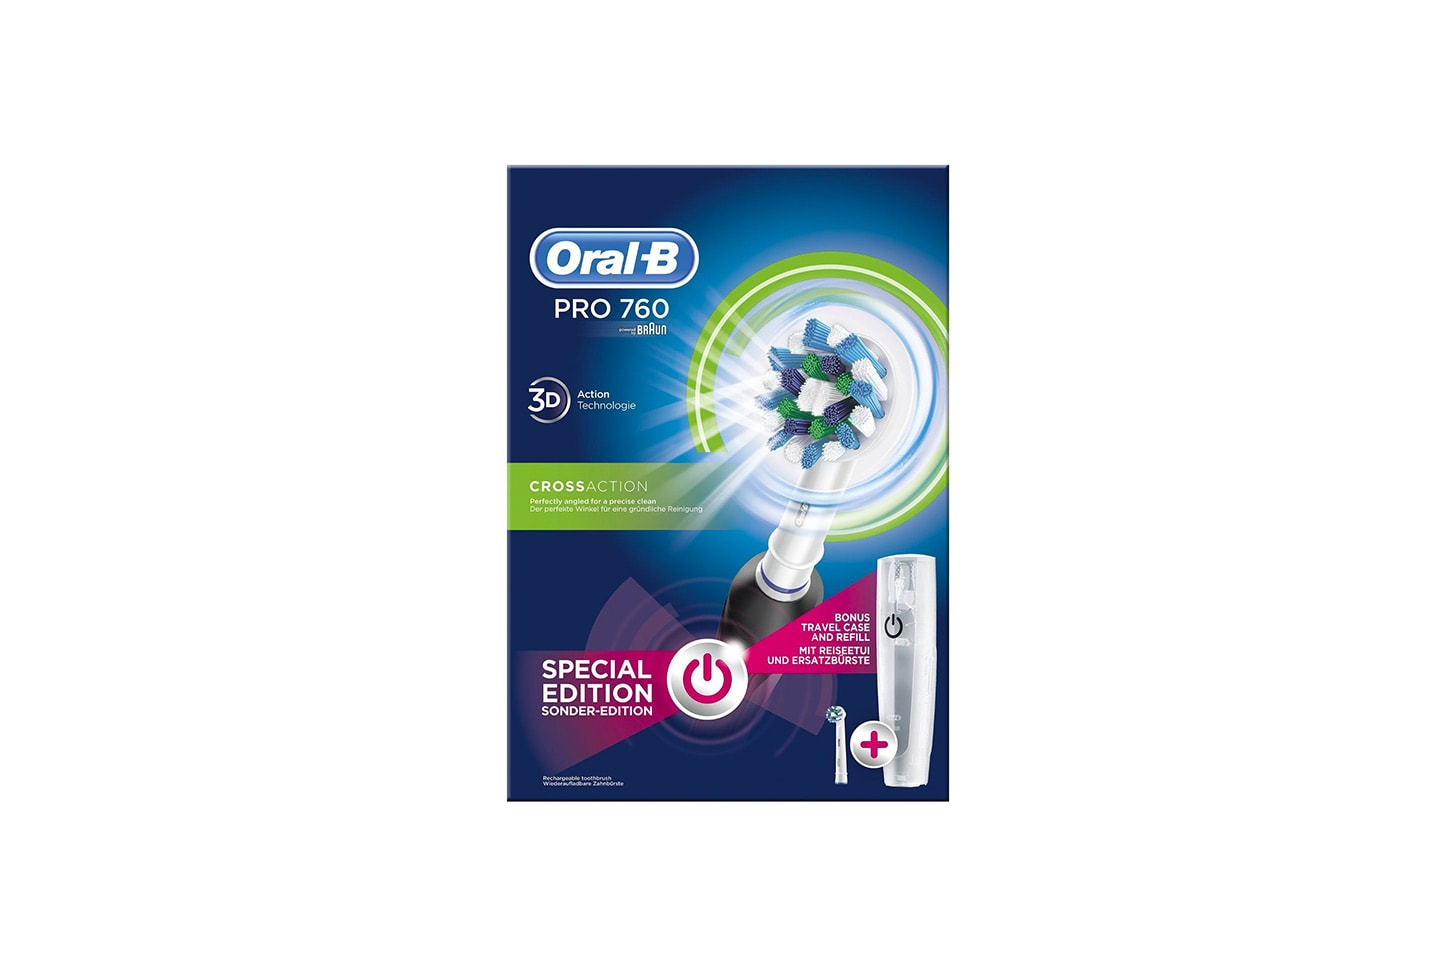 Braun Oral-B PRO 760 CrossAction elektrisk tannbørste